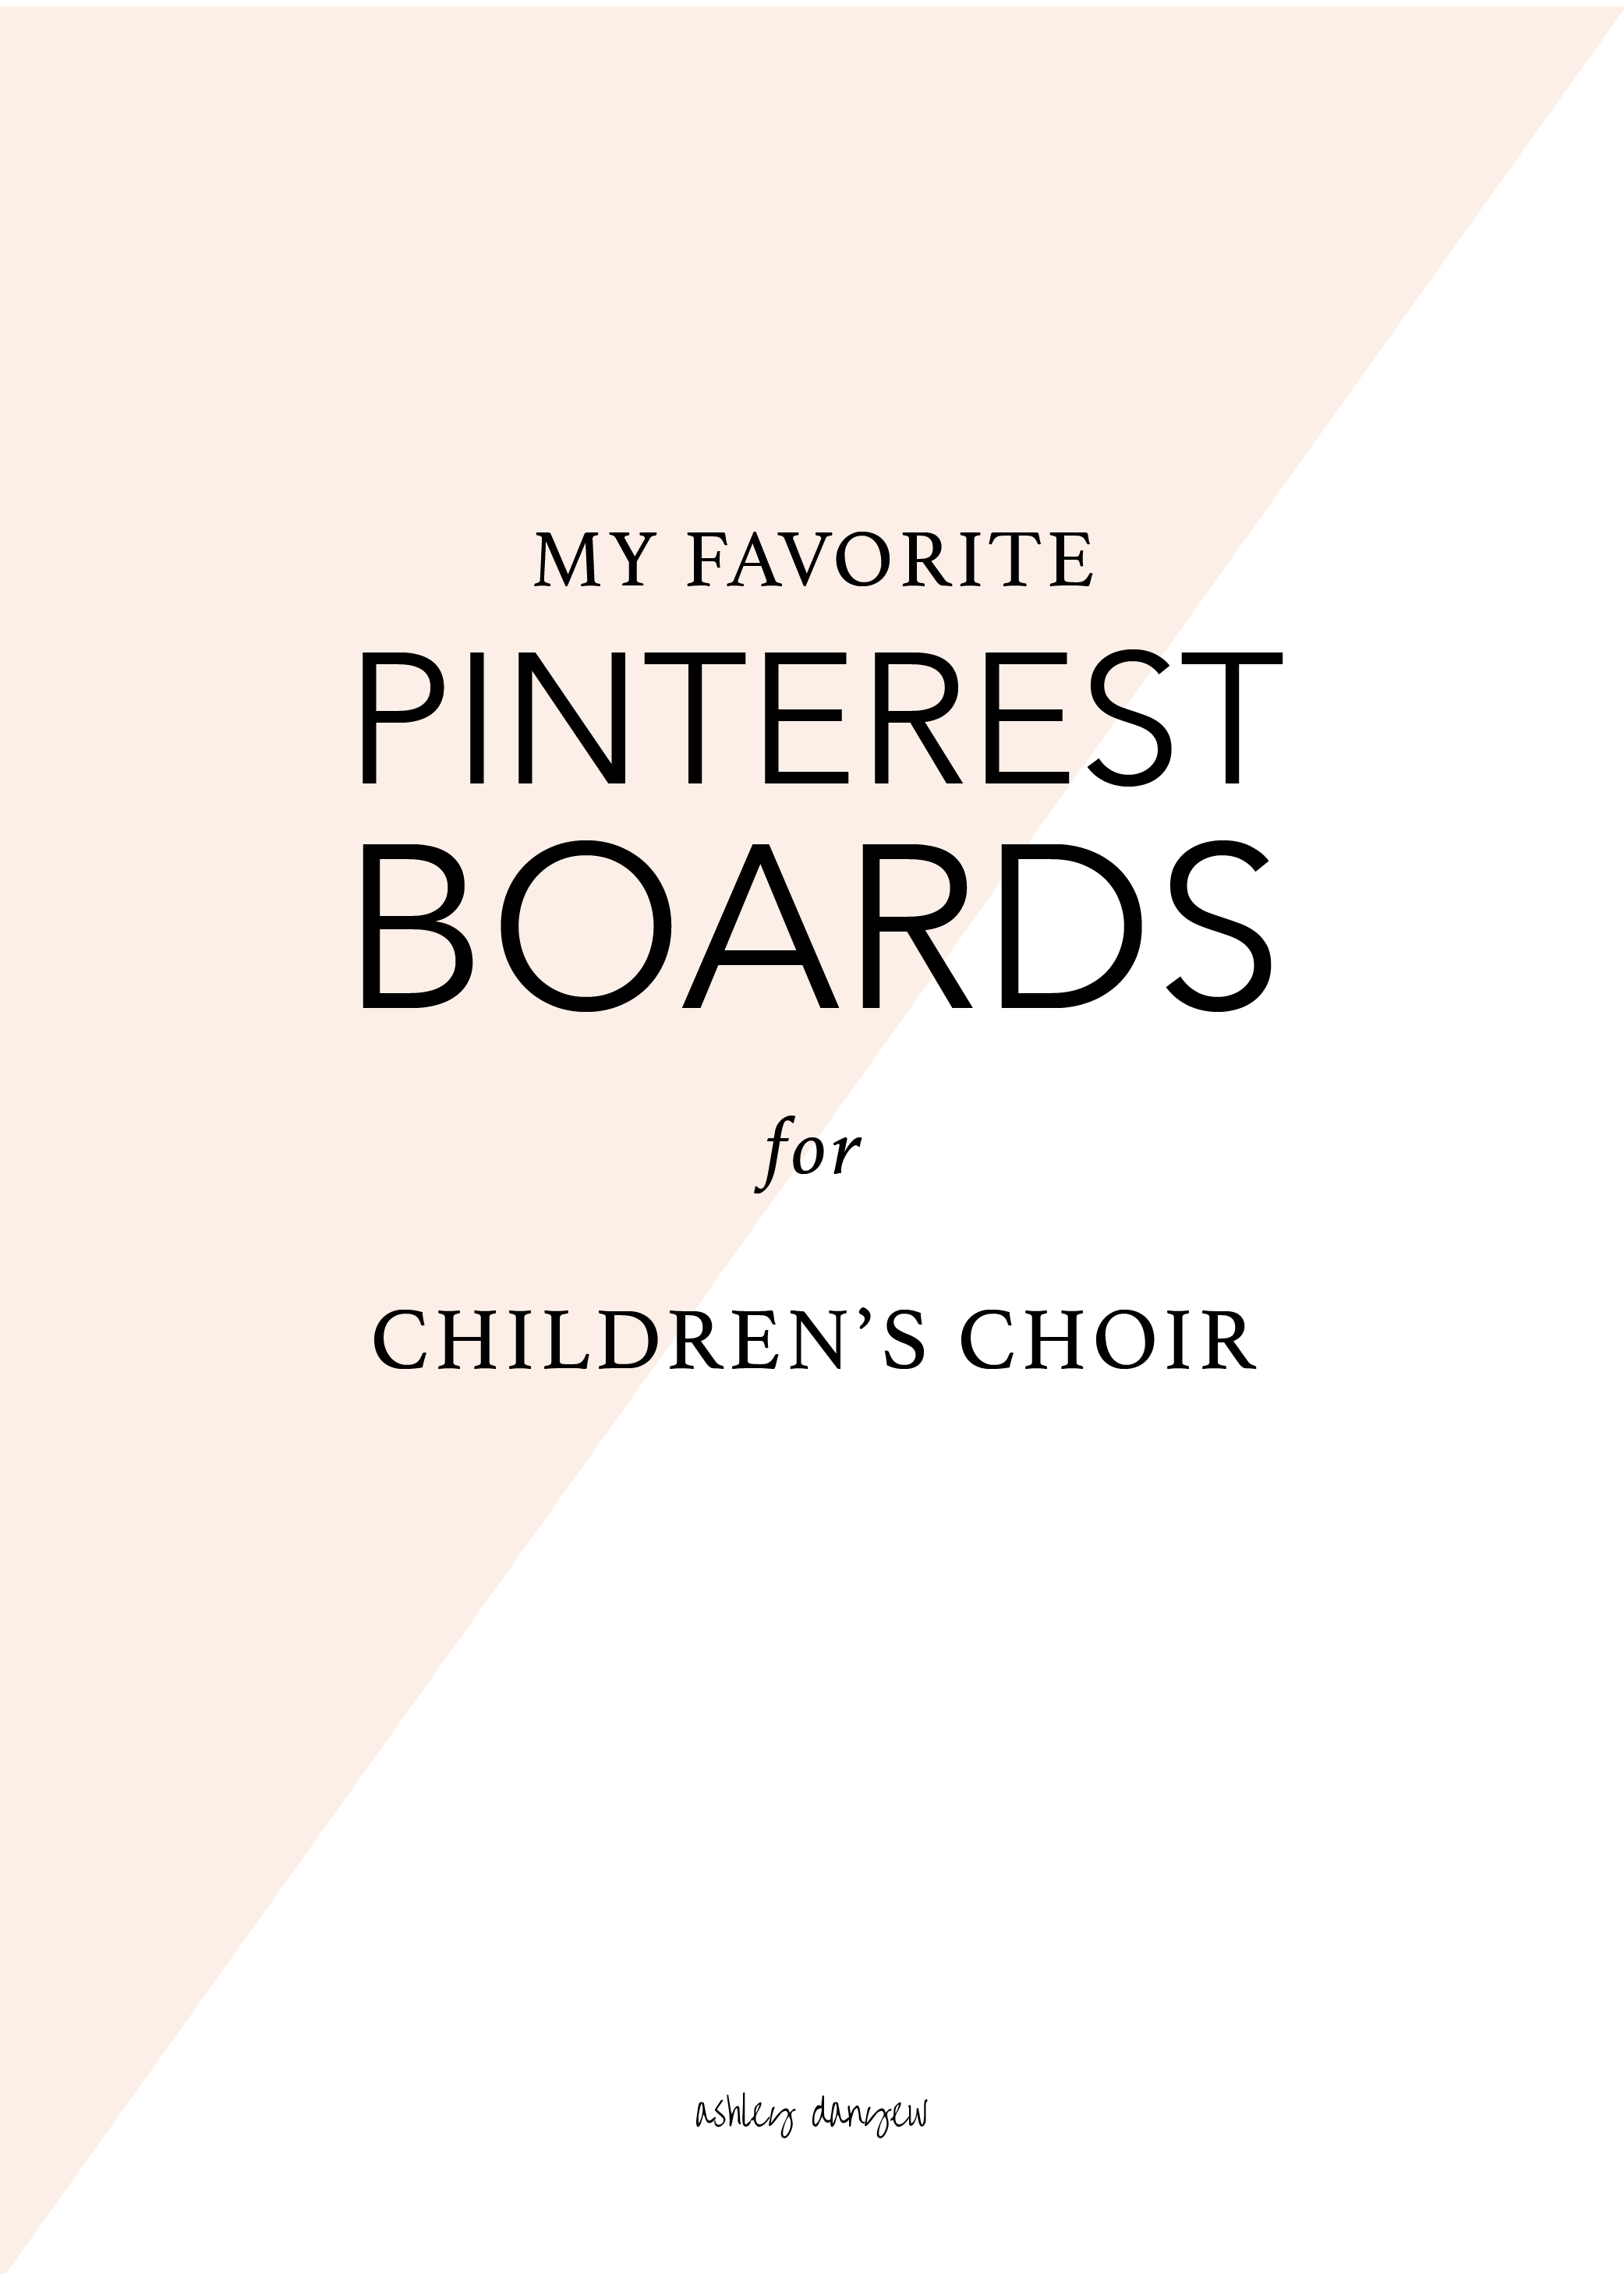 My-Favorite-Pinterest-Boards-for-Childrens-Choir-01.png